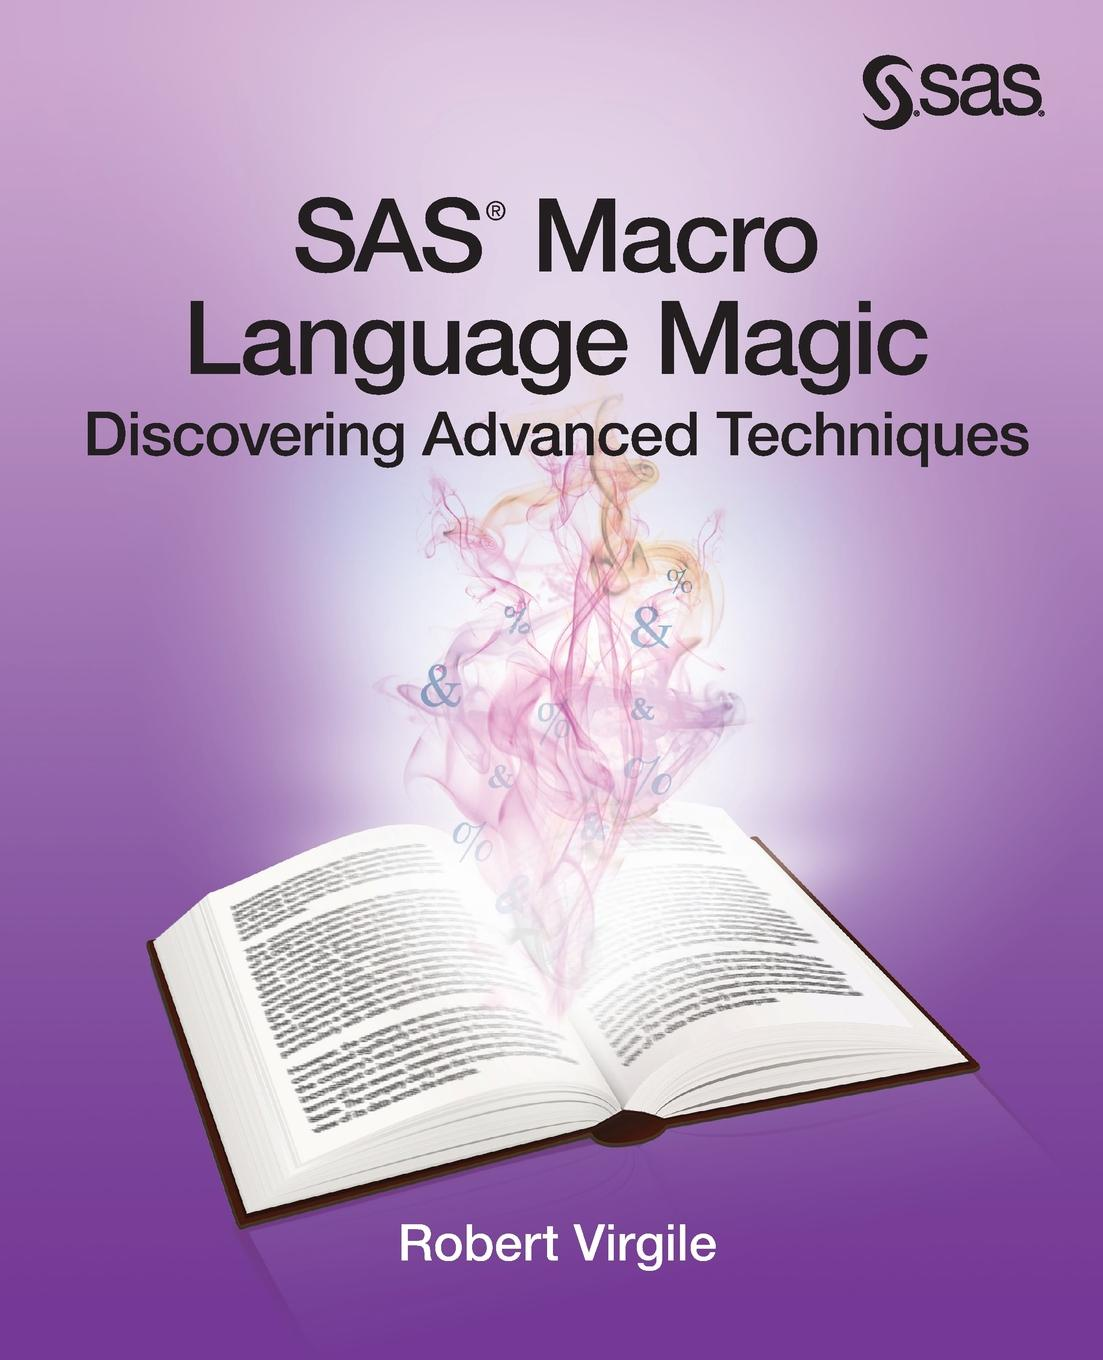 Robert Virgile SAS Macro Language Magic. Discovering Advanced Techniques charles webster leadbeater secrets revealed clairvoyance magic and the reality of spirits